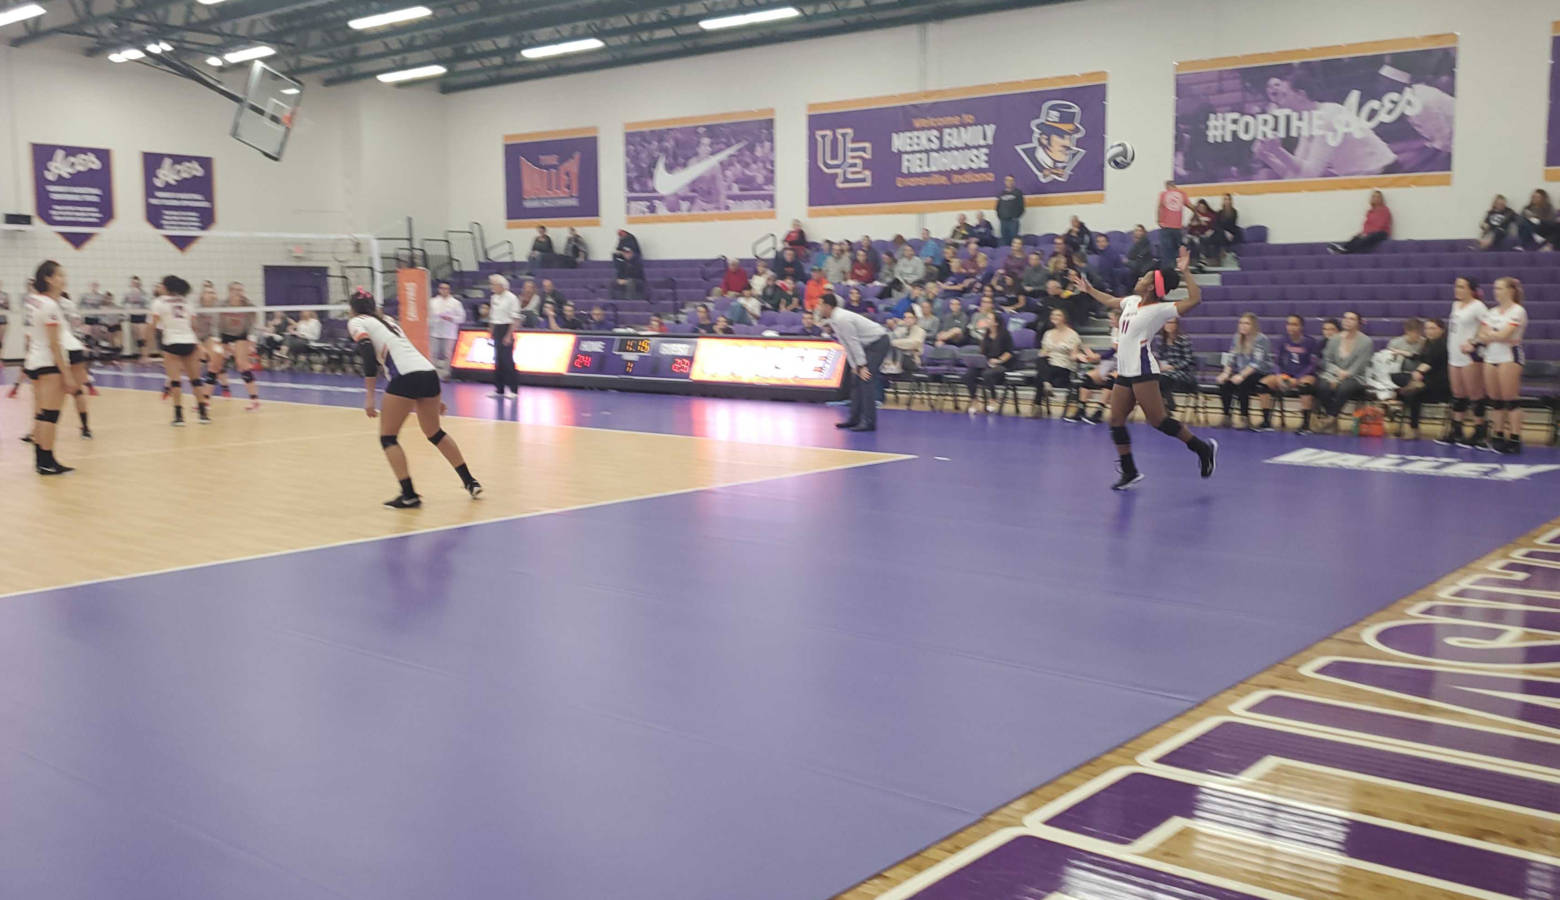 University of Evansville women's volleyball team plays against conference opponent Bradley University. (Samantha Horton/IPB News)